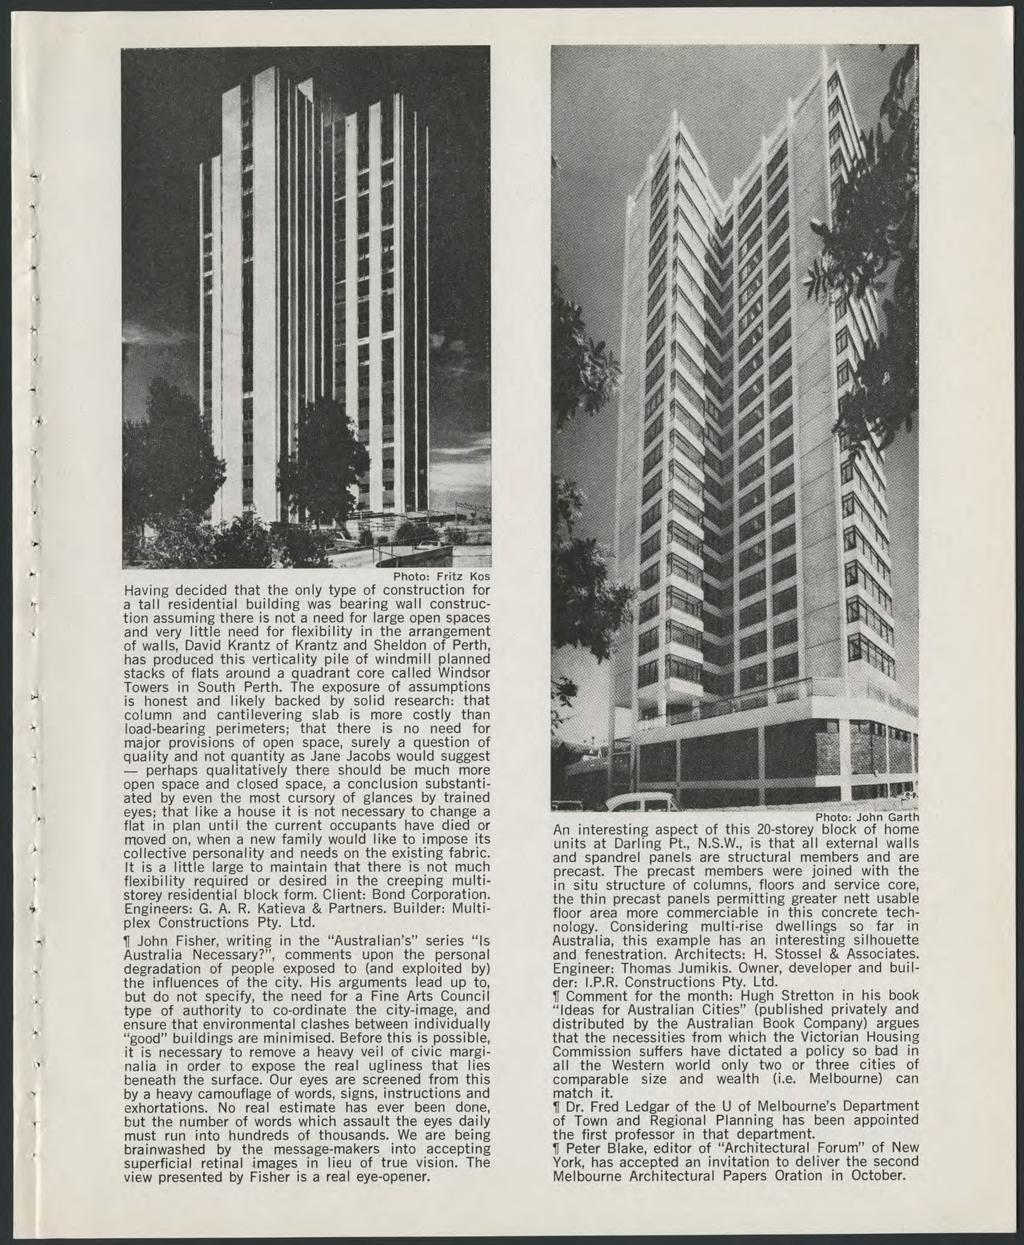 Photo: Fritz Kos Having decided that the only type of construction for a tall residential building was bearing wall construction assuming there is not a need for large open spaces and very little